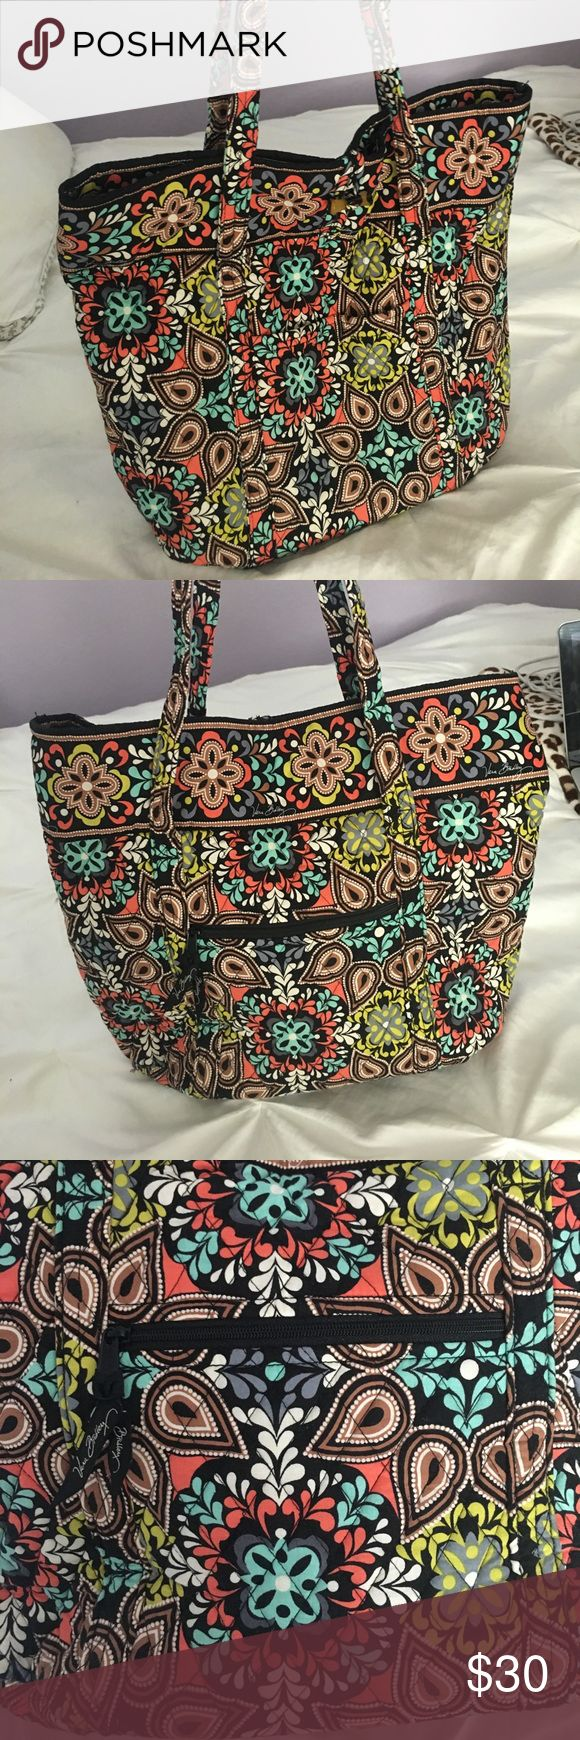 Vera Bradley tote Vera Bradley tote bag with adorable print on it only been used about twice is in perfect condition!!! Vera Bradley Bags Totes